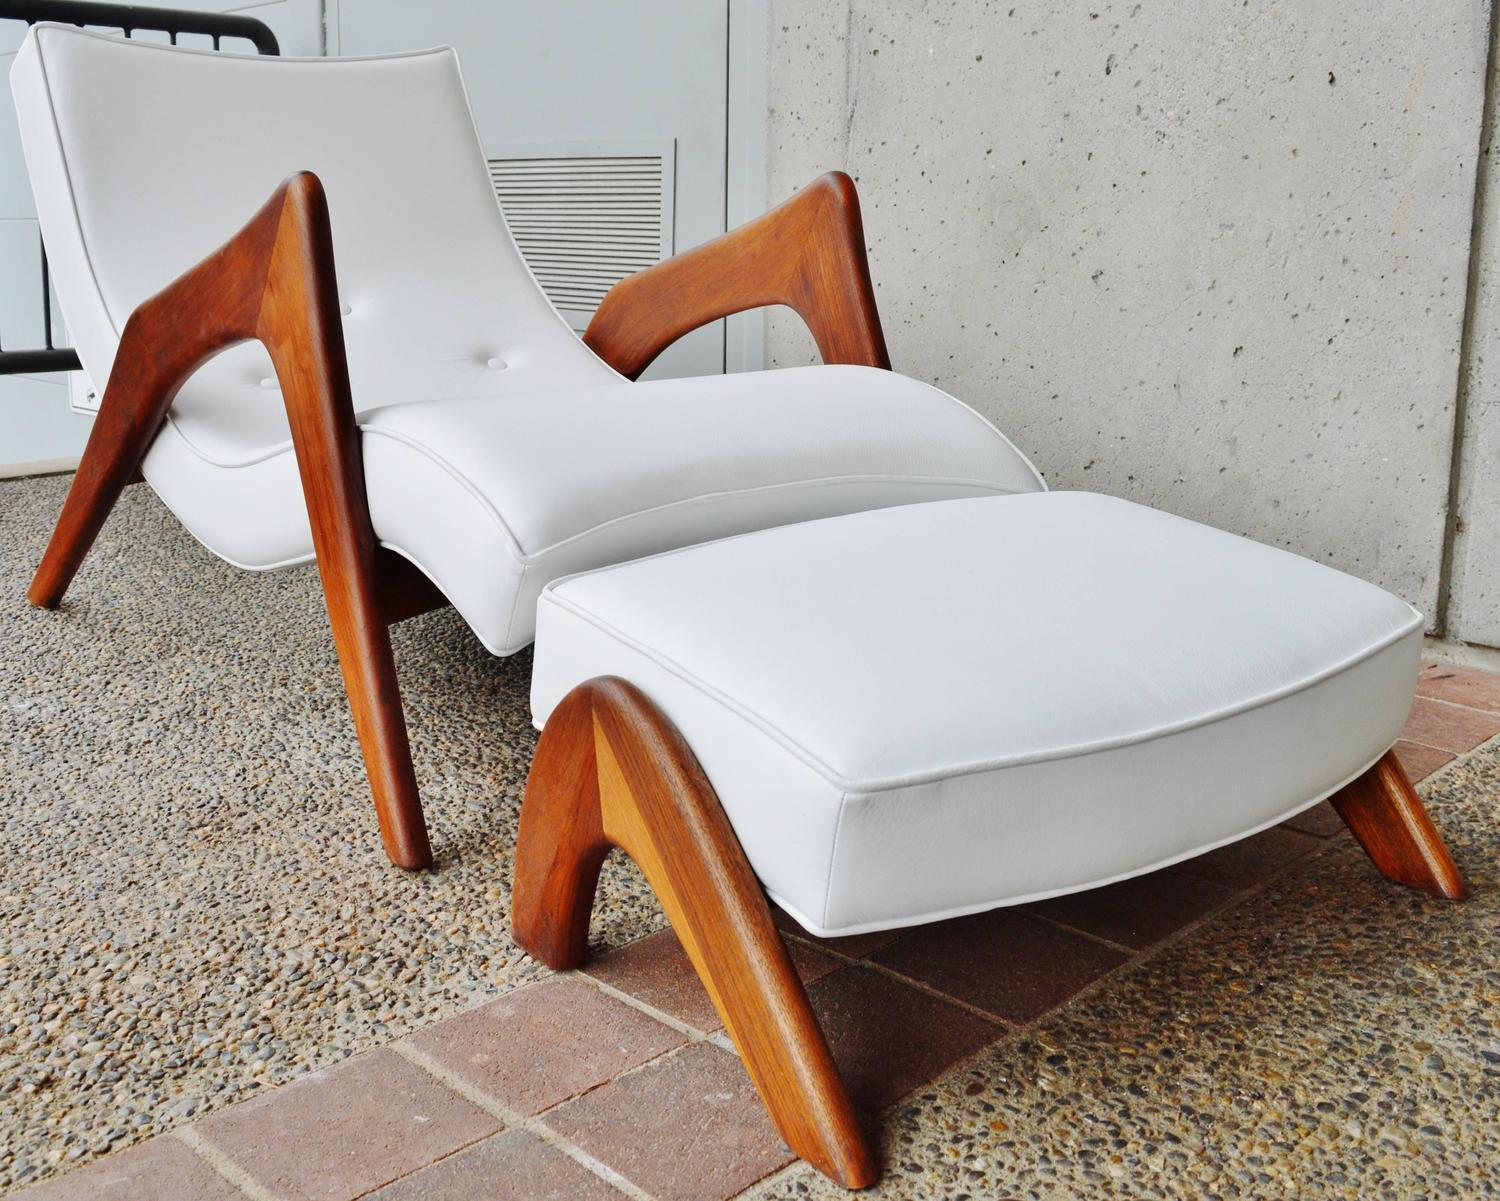 Rare Grasshopper Chaise and Ottoman White Leather by Adrian Pearsall at 1stdibs